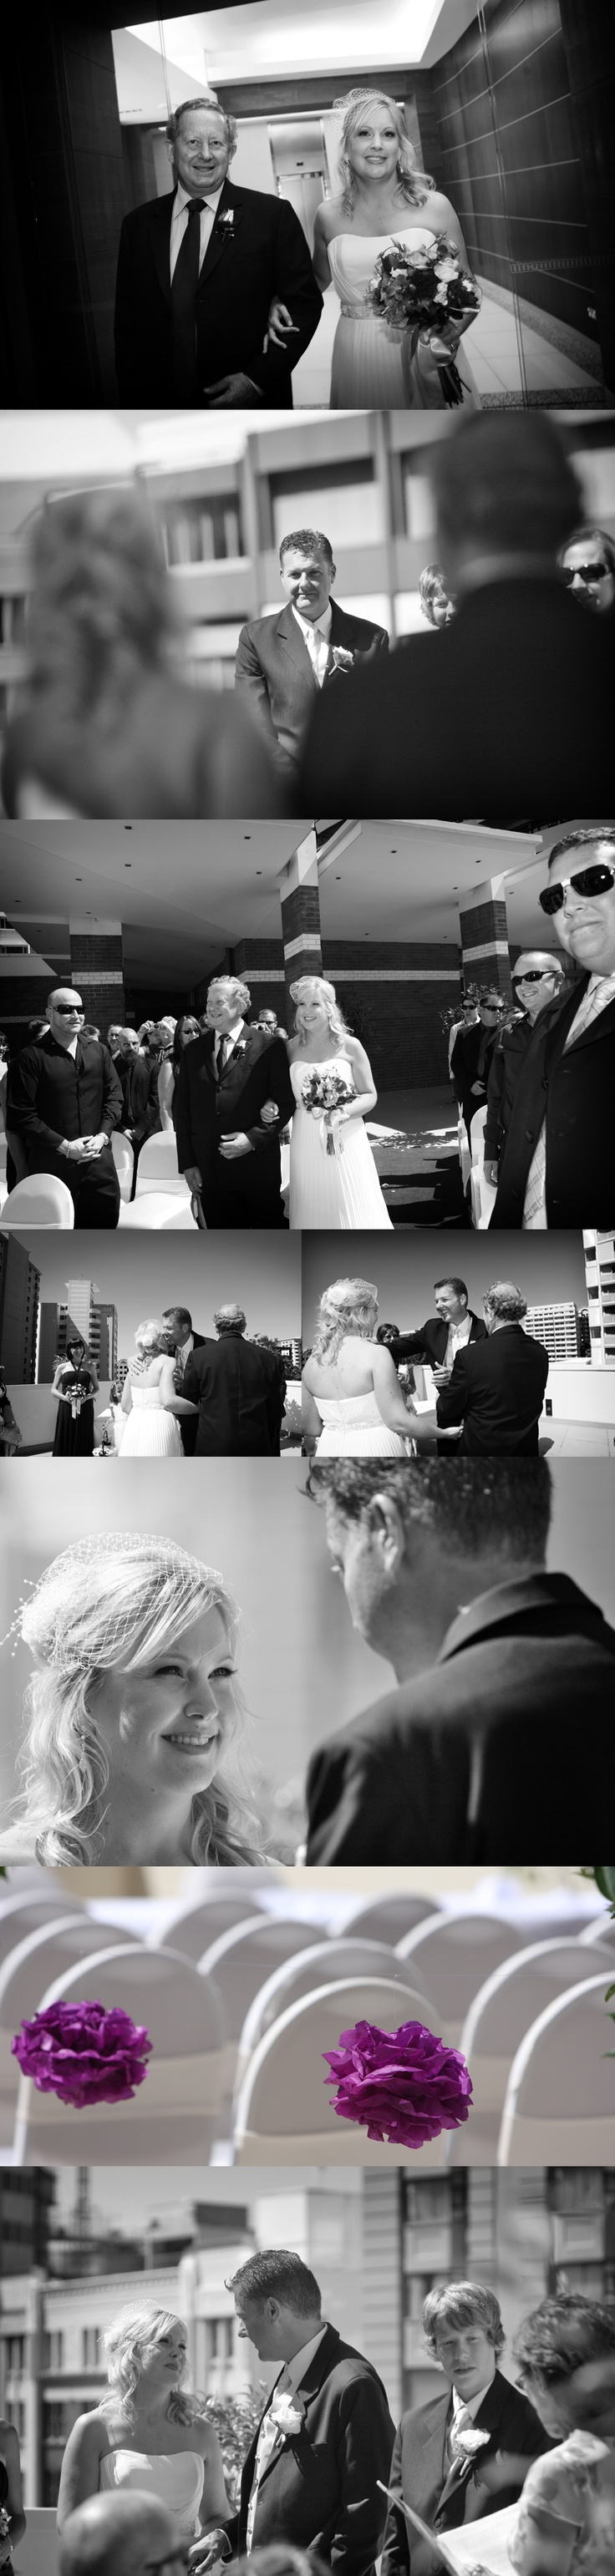 Jessica Photography, Auckland wedding photographer